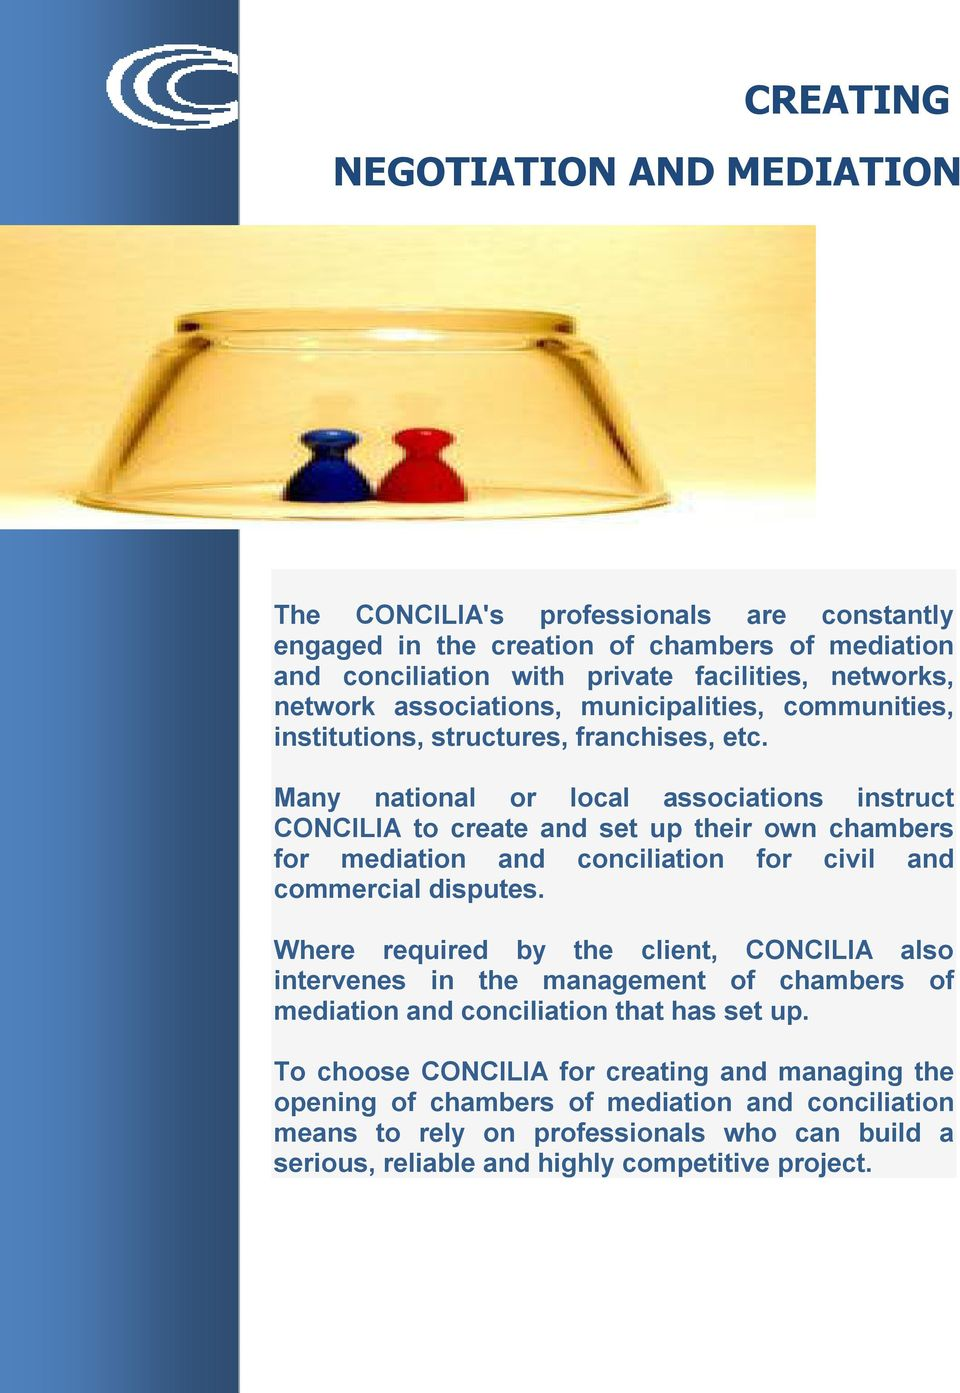 Many national or local associations instruct CONCILIA to create and set up their own chambers for mediation and conciliation for civil and commercial disputes.